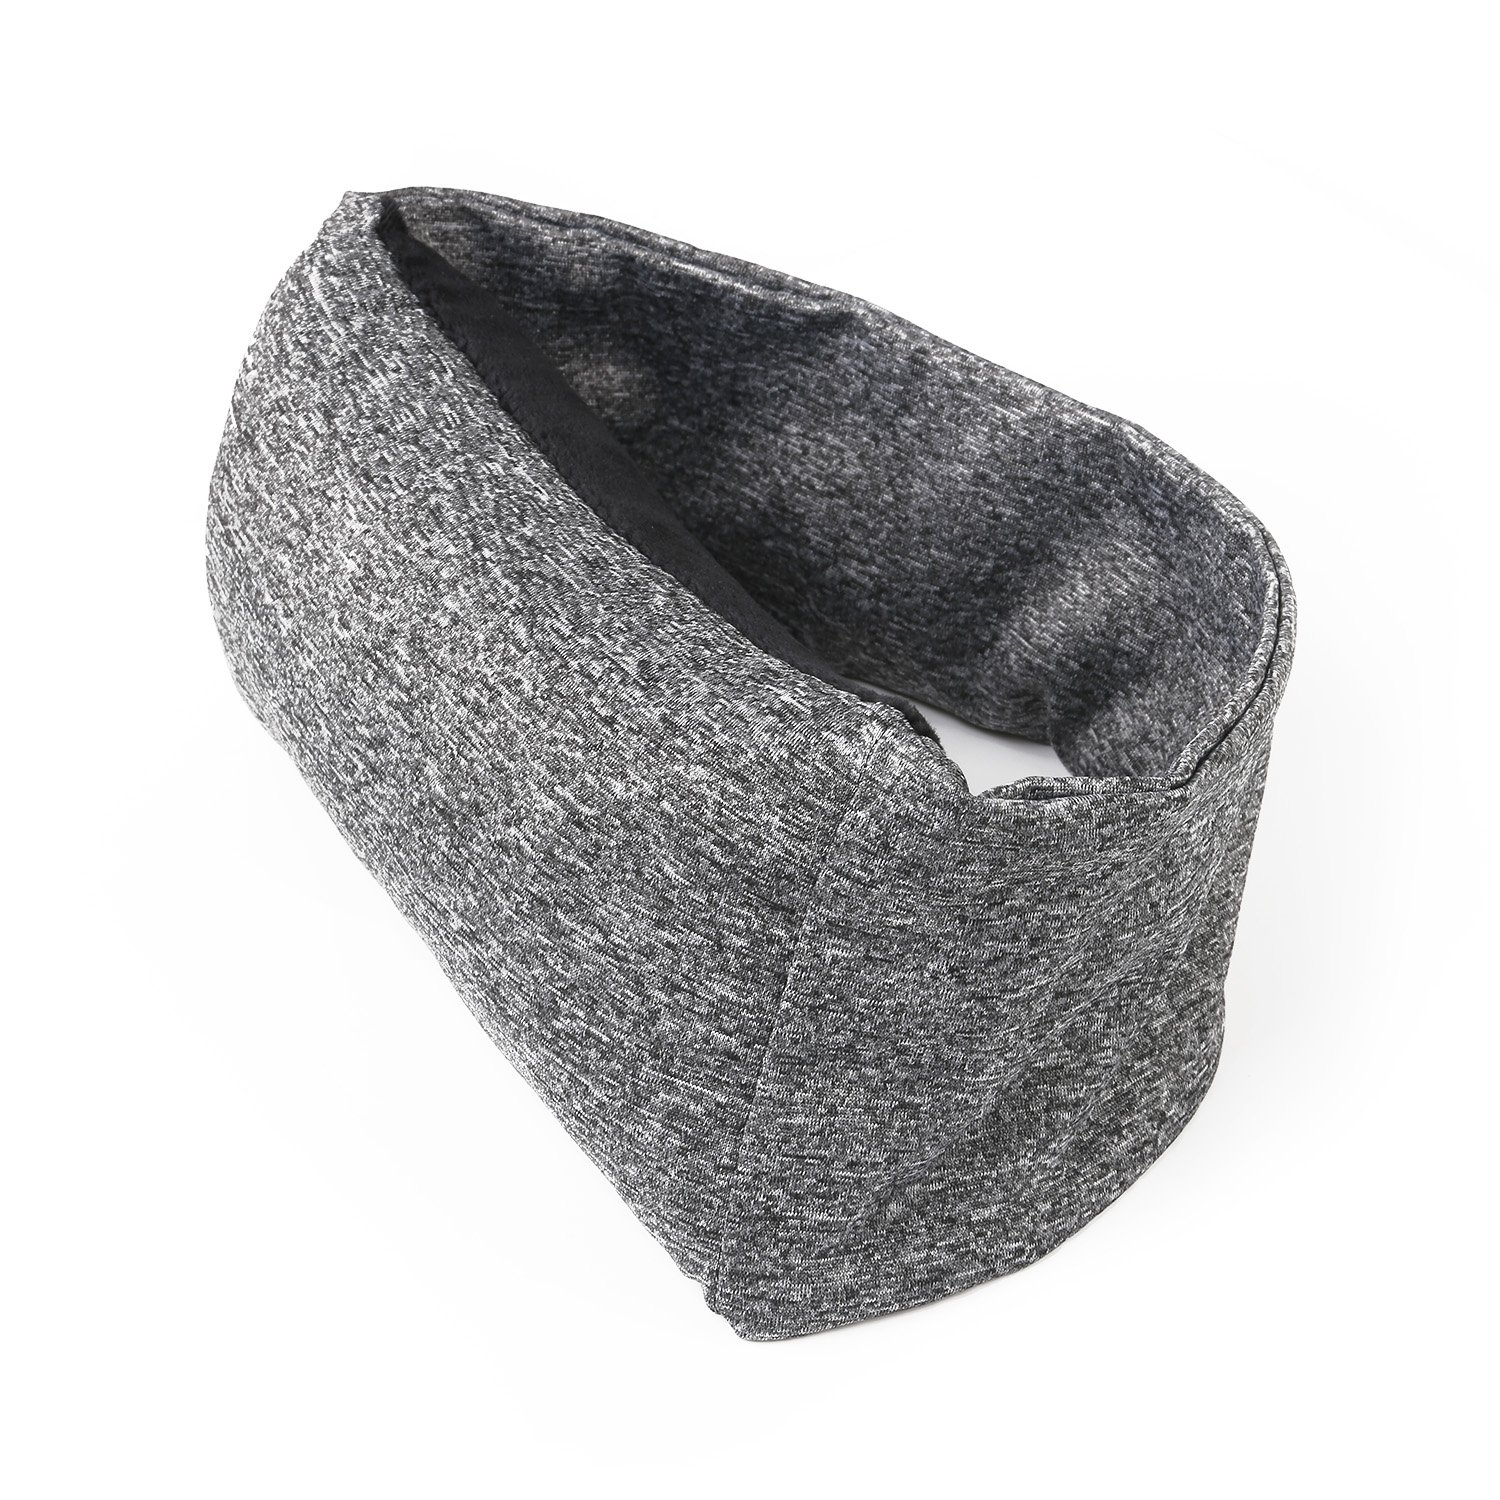 Travel Pillow, 2 in 1 Neck Pillow and Eye Mask, Soft Neck Pillow for Travel, Camping, Business Trip. Comfortable Neck Support for Airplane, Train and Car - Grey